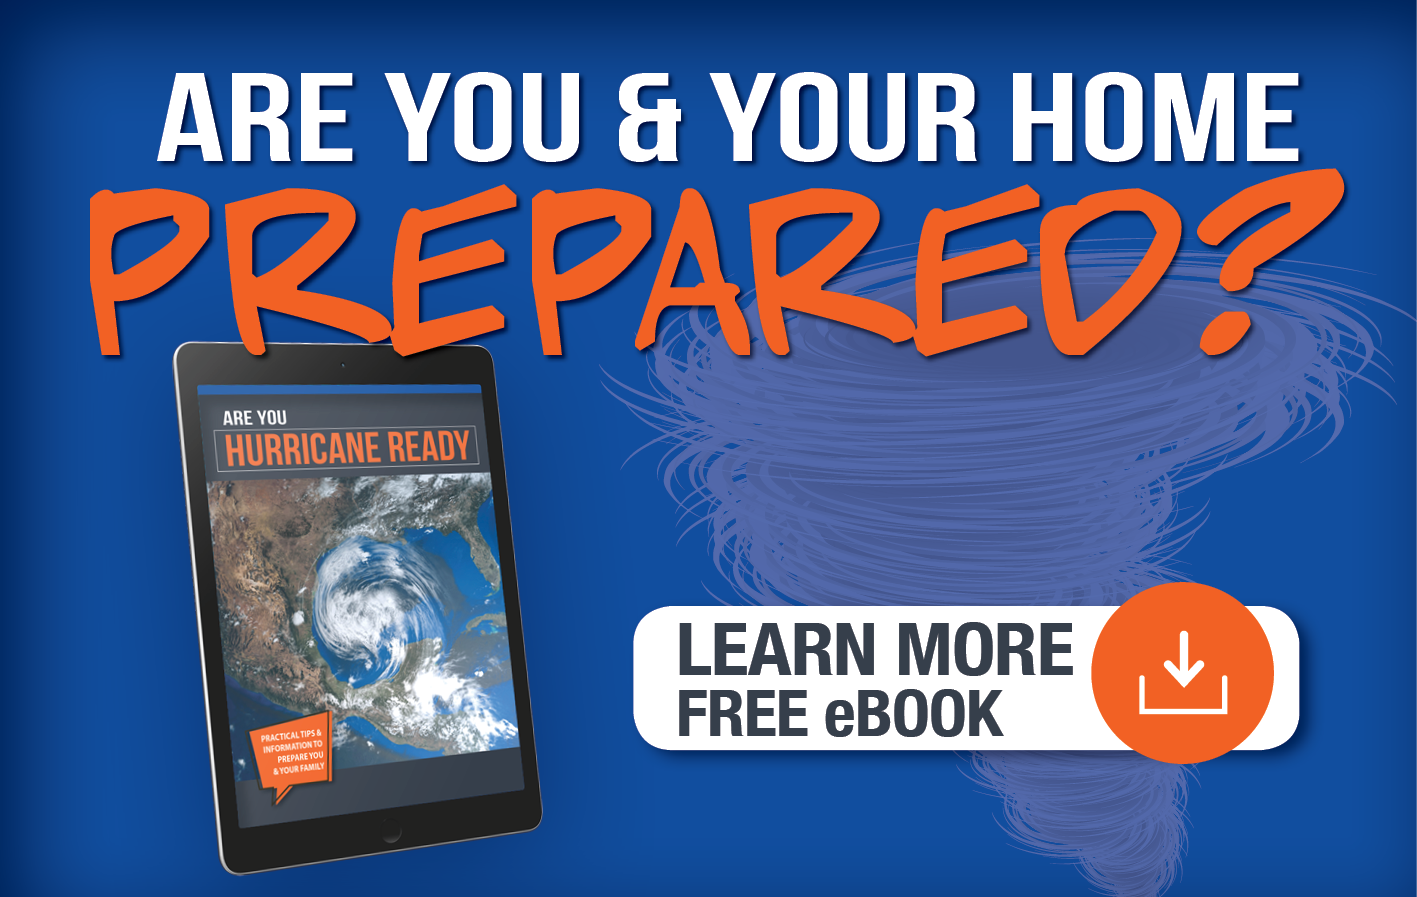 Hurricane Ready FREE eBook Download